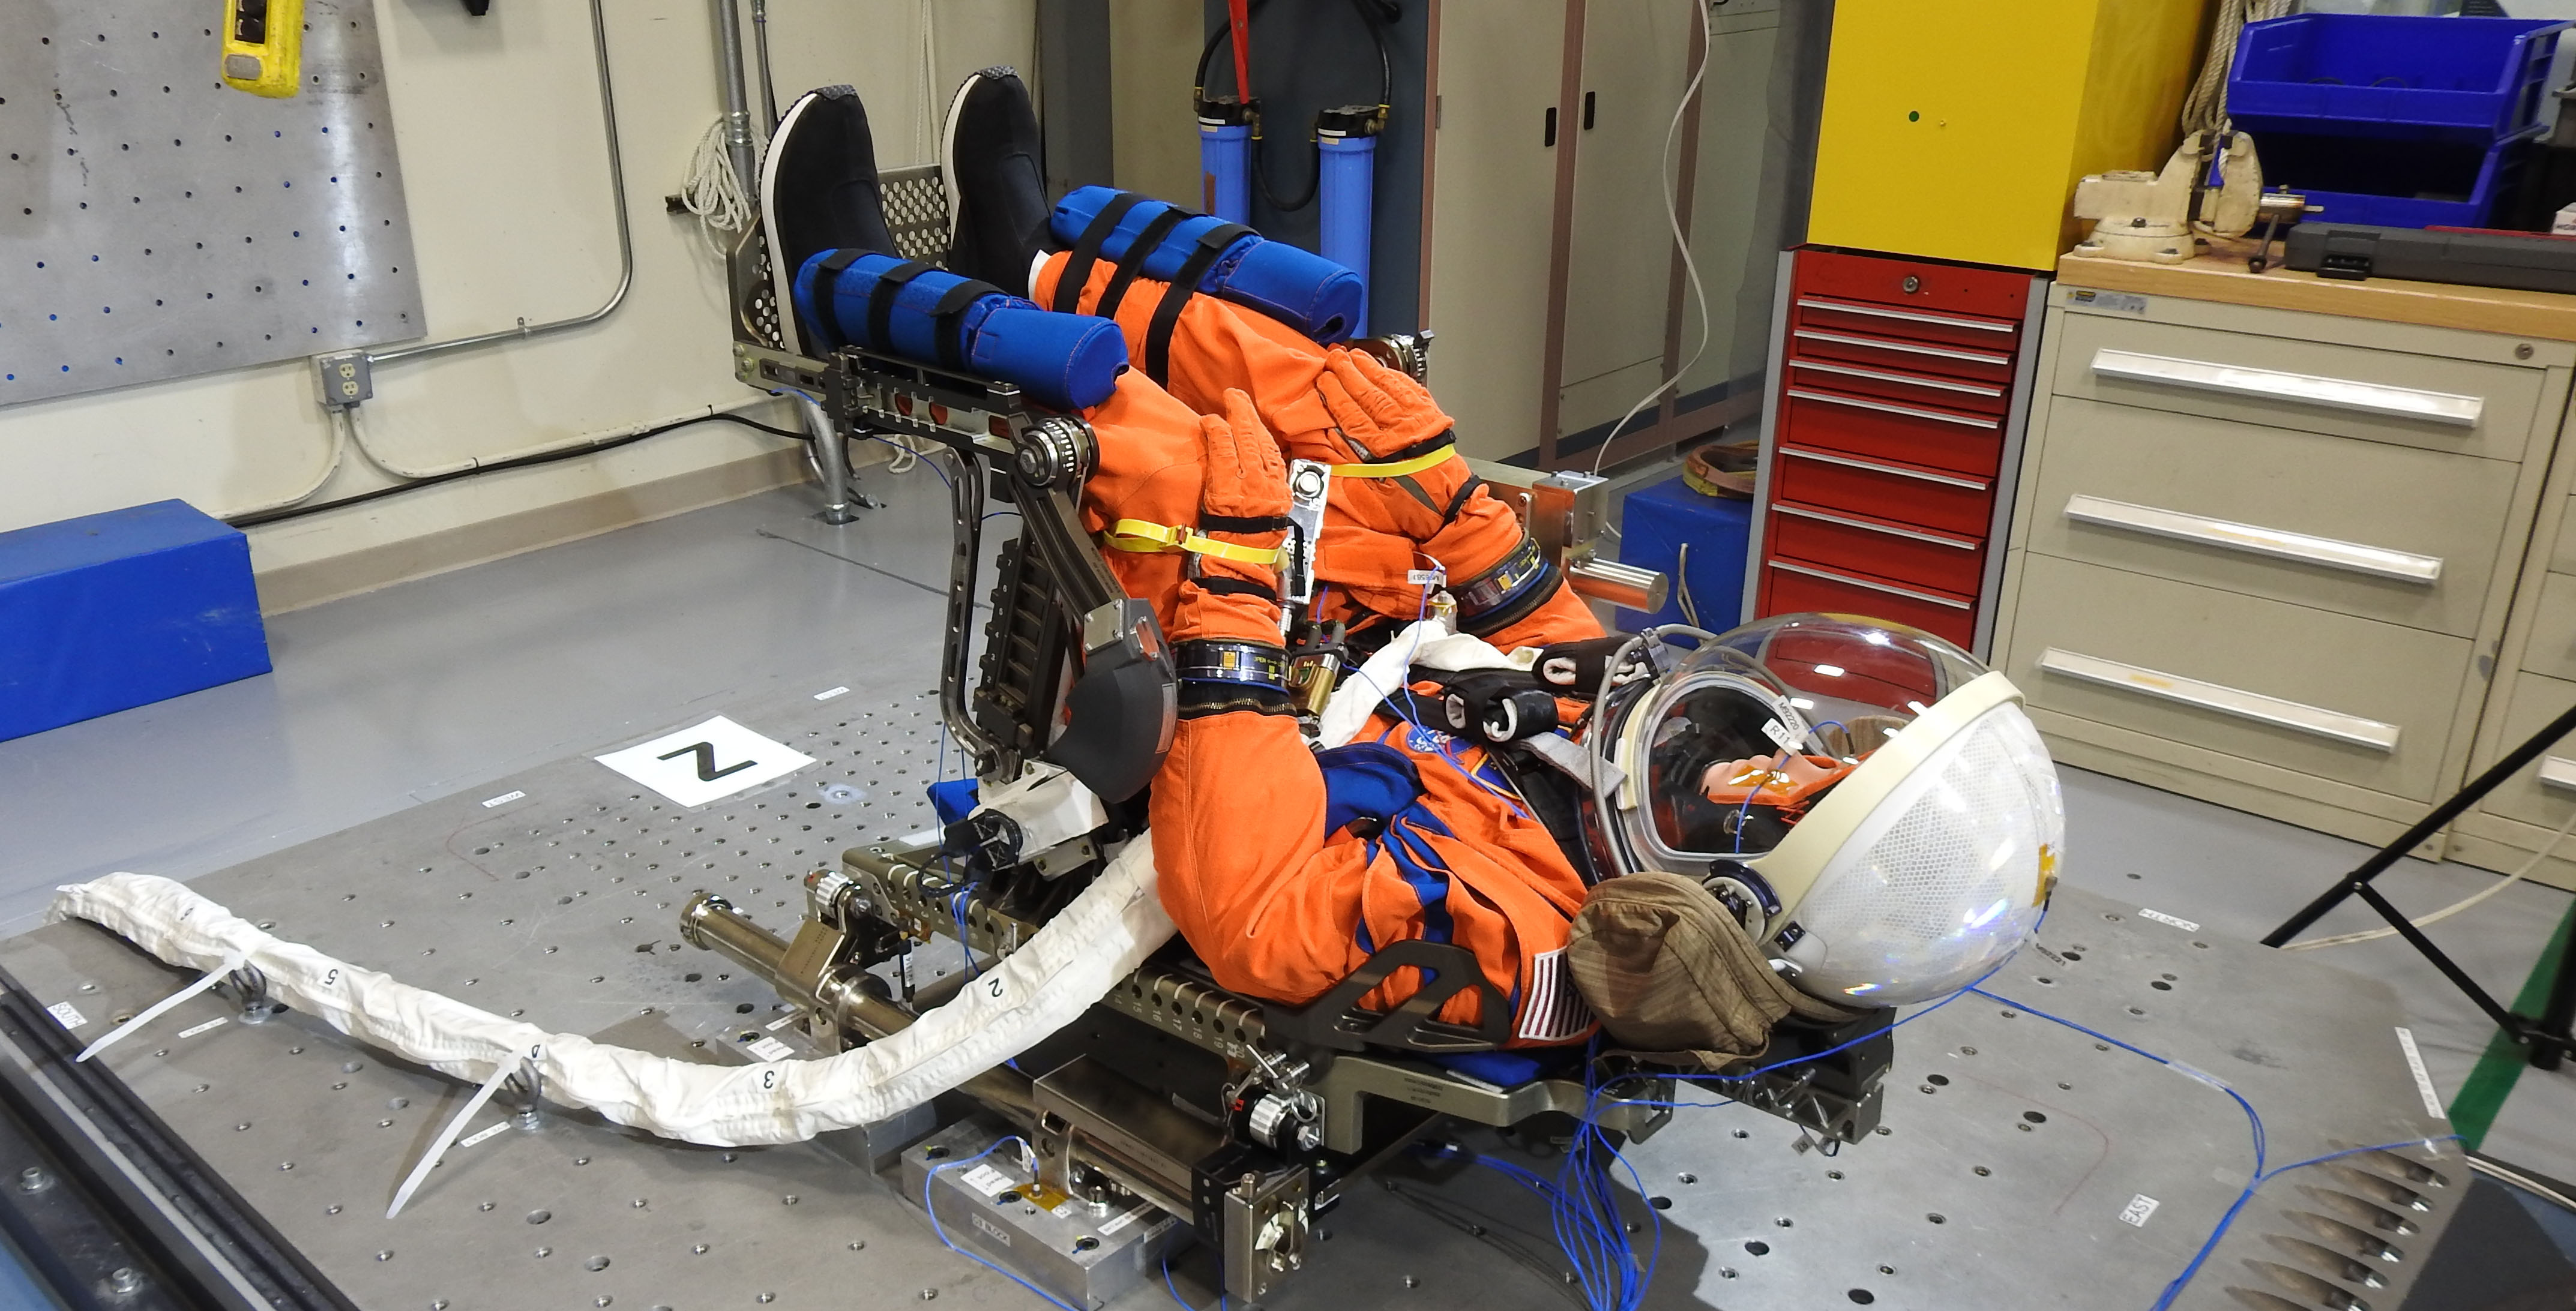 A Purposeful Passenger Prepares for Mission Aboard Orion Spacecraft